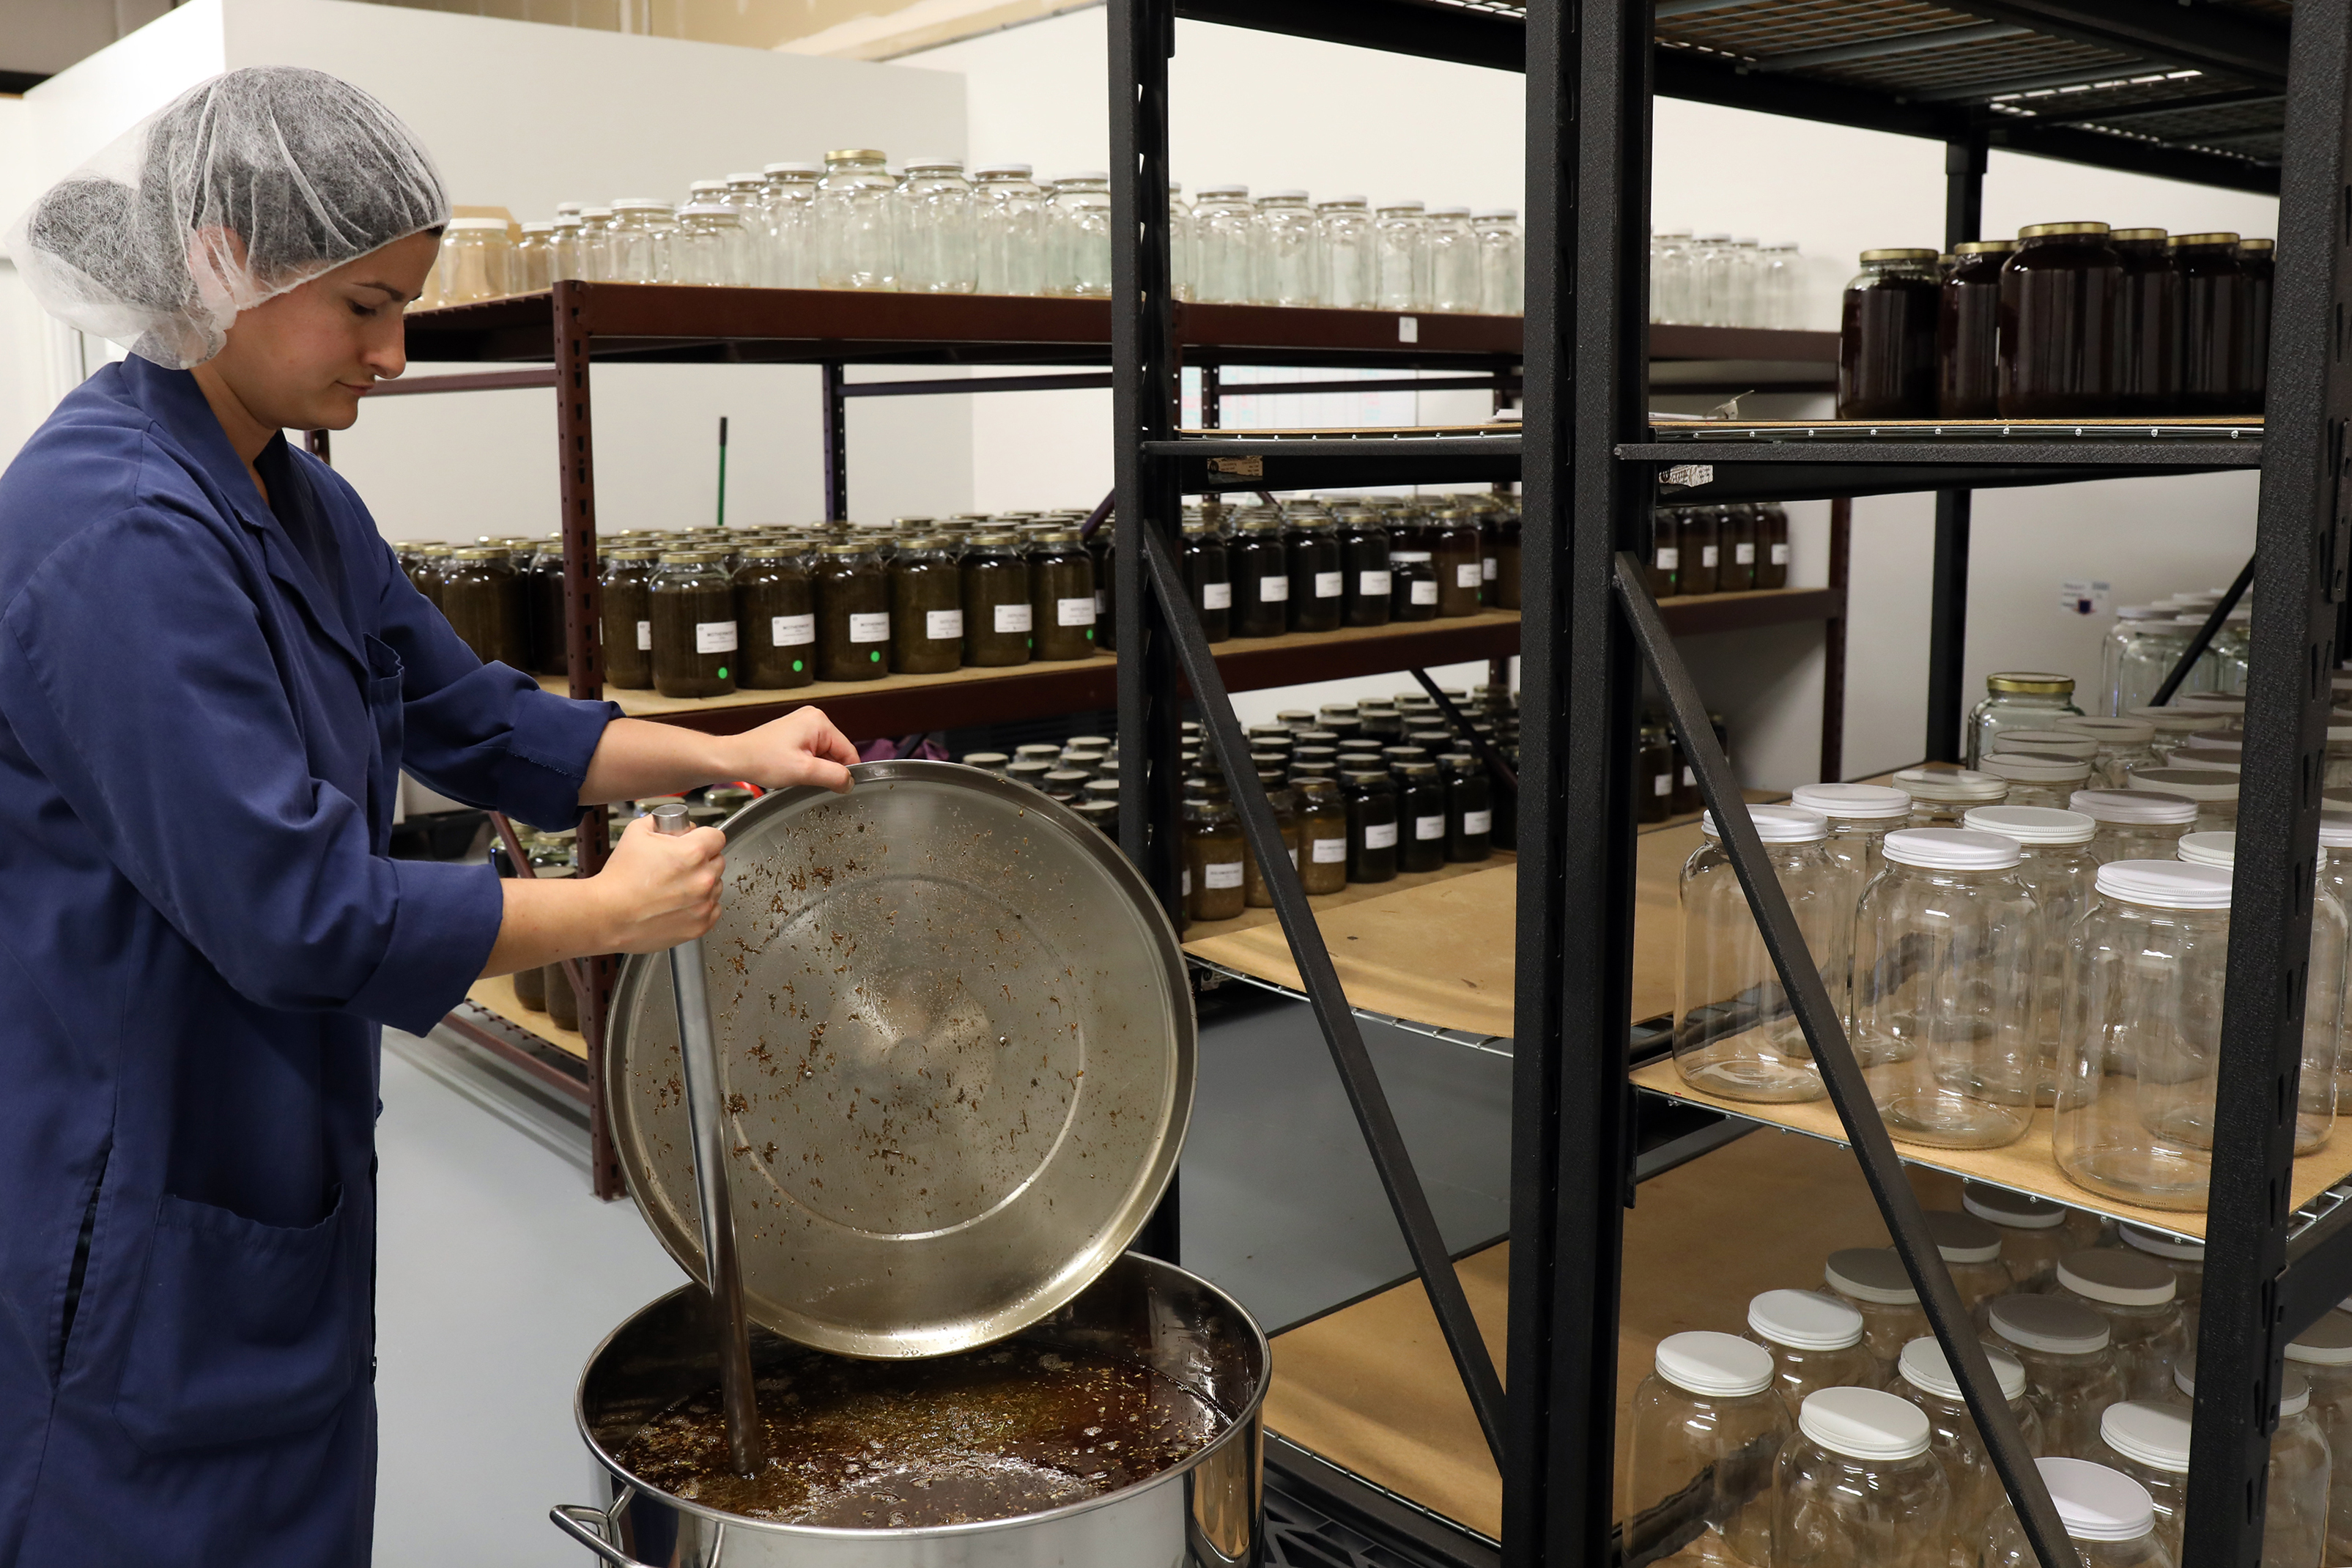 A picture of Shay at work mixing a batch of herbal elixir in the production line of Mountain Rose Herbs. She is standing among several shelves of large glass jars, some empty, some containing herbal infusions.